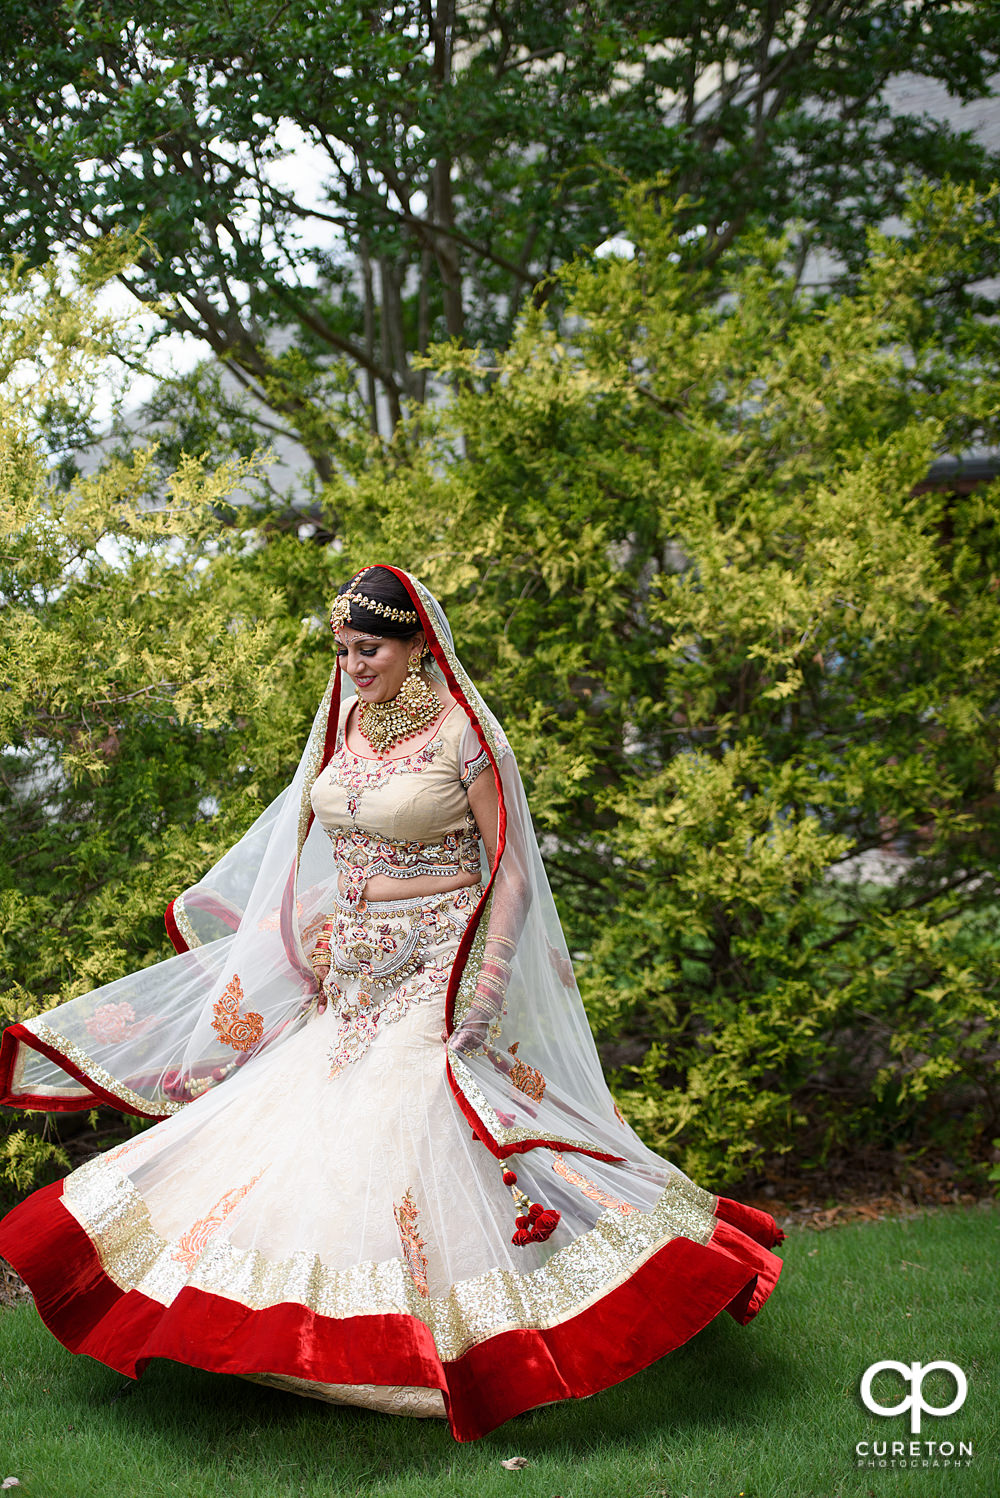 Indian bride twirling in her dress.